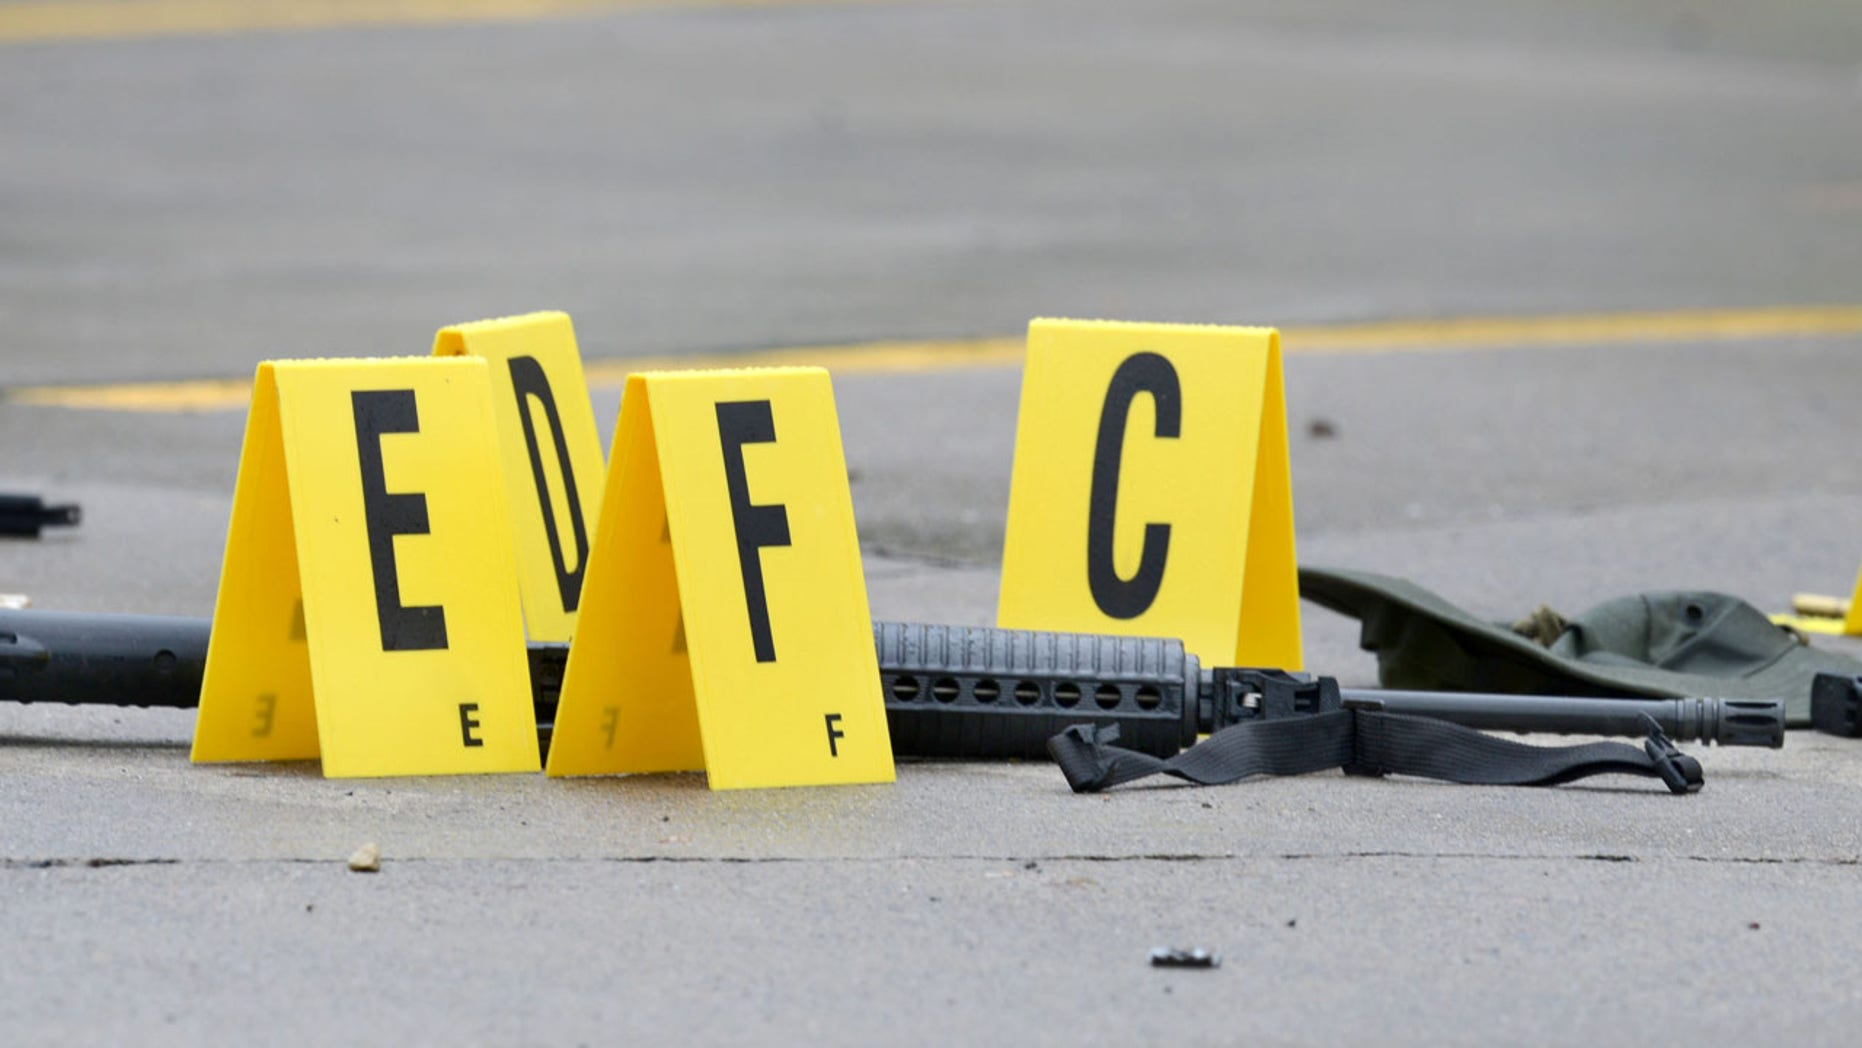 July 7, 2016: A weapon lays on the ground next to evidence markers in Bristol, Tenn. Three people were injured and one person was killed after a man opened fire on motorists traveling along a parkway in East Tennessee.